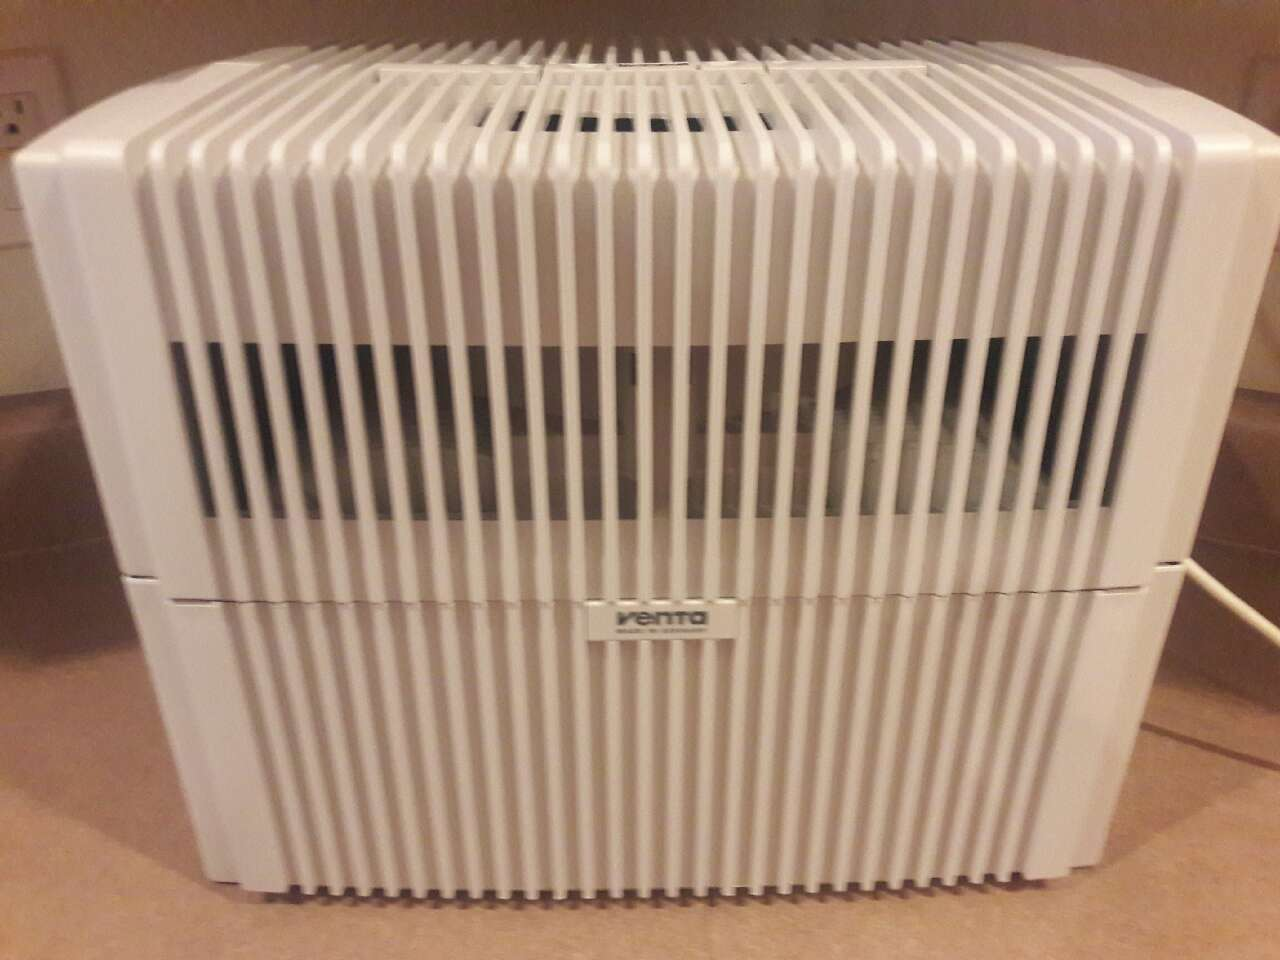 Baby and Child Venta Airwasher/humidifier Model Lw45..negotable #8C6340